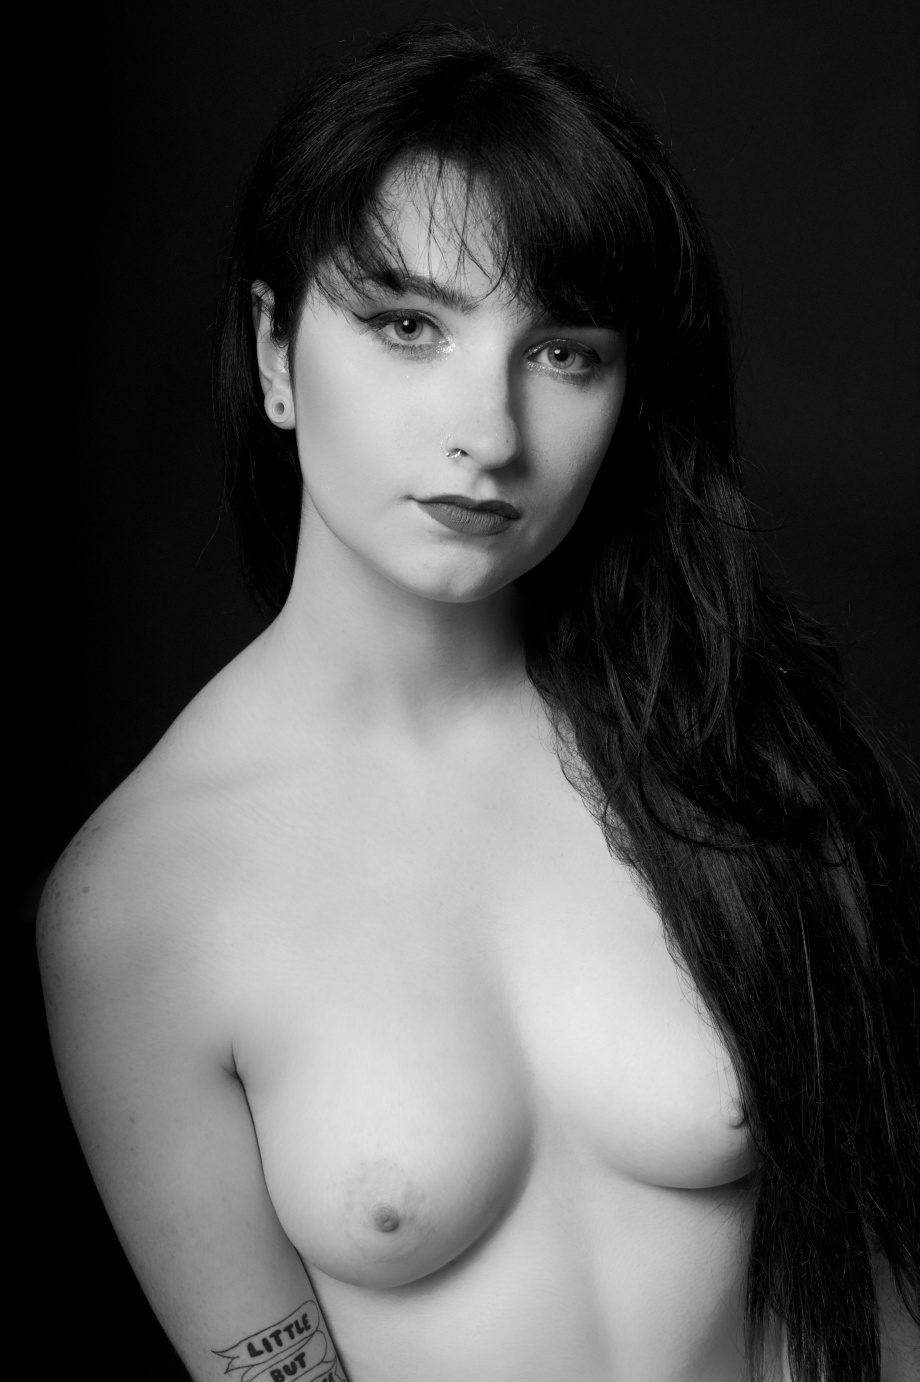 Glamour photography in Cork/Ireland